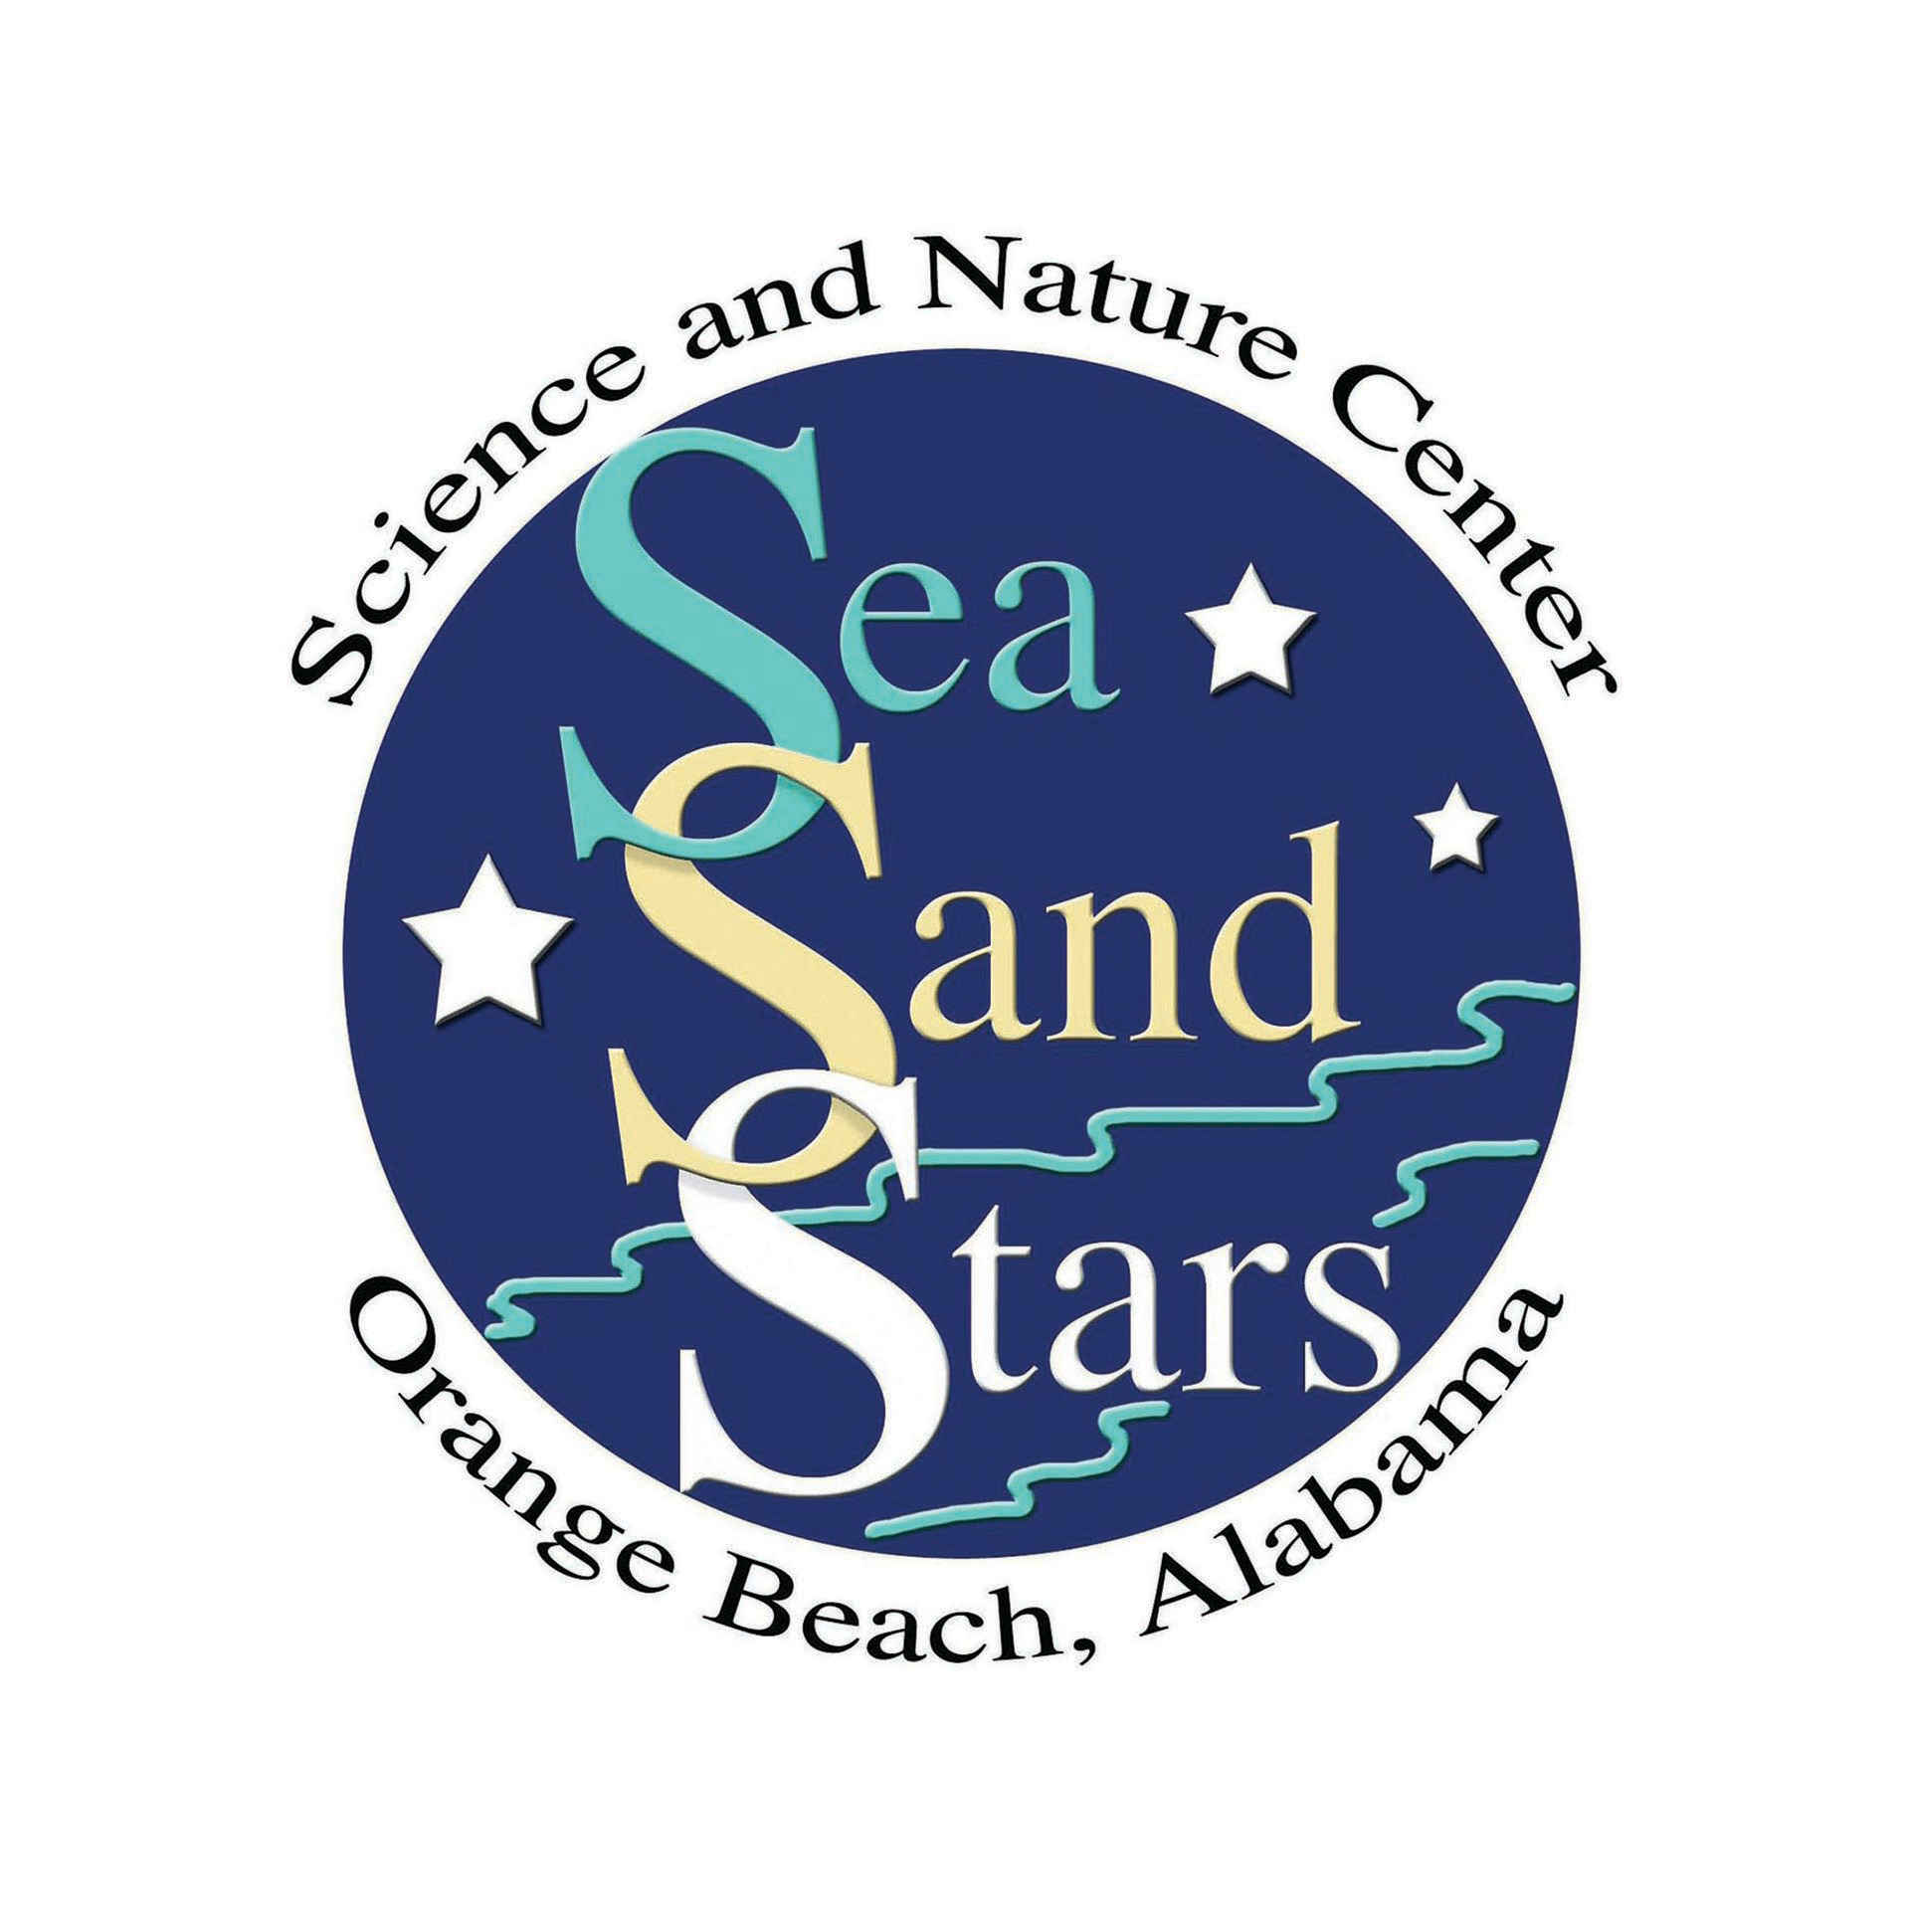 Sea Sand and Stars Logo